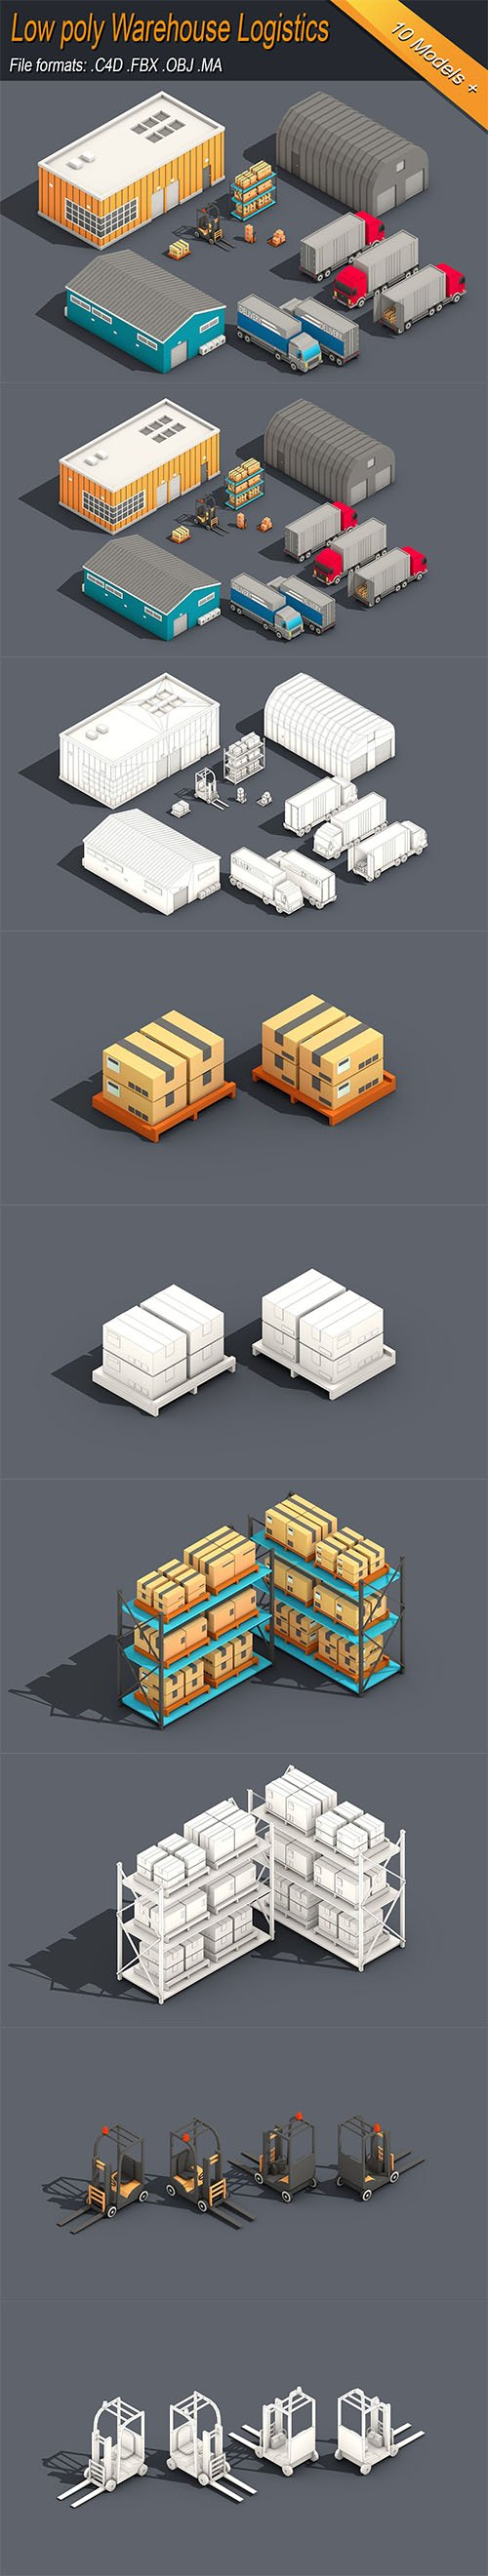 Low Poly Warehouse Logistics Isometric Low-poly 3D model